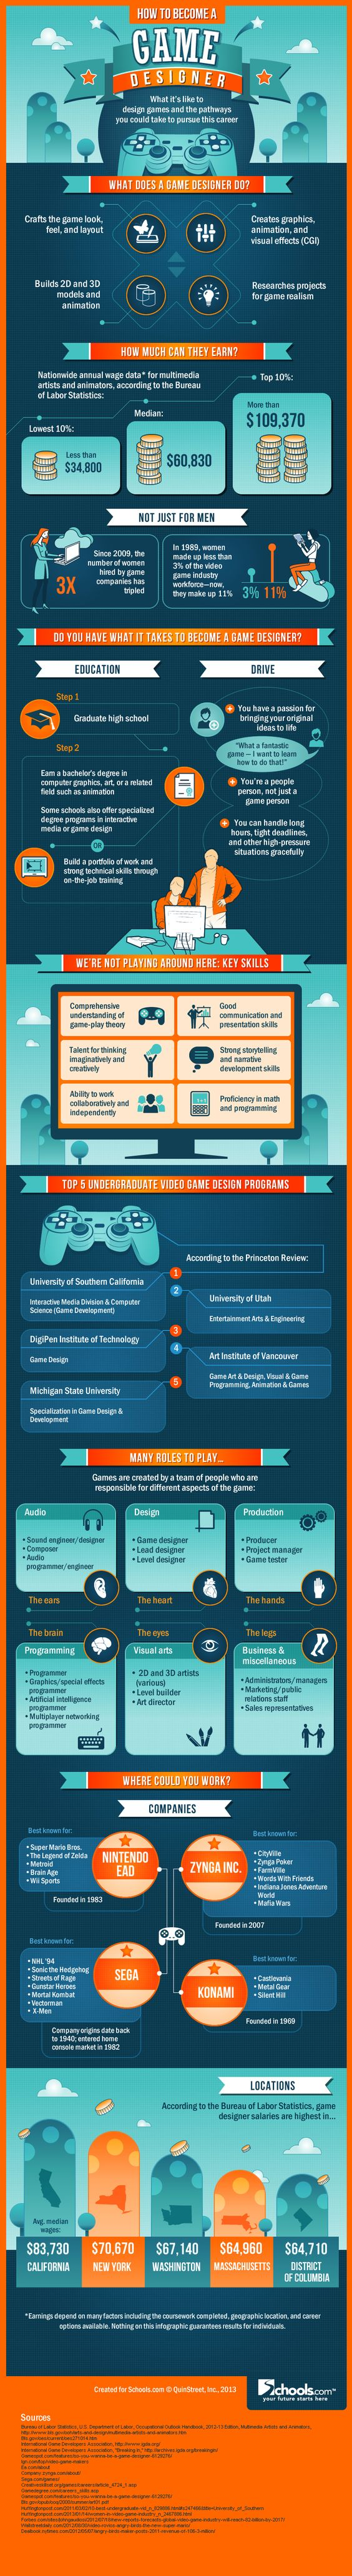 Learn how to become a game designer with this career infographic. #gamedesign #career #gamedev